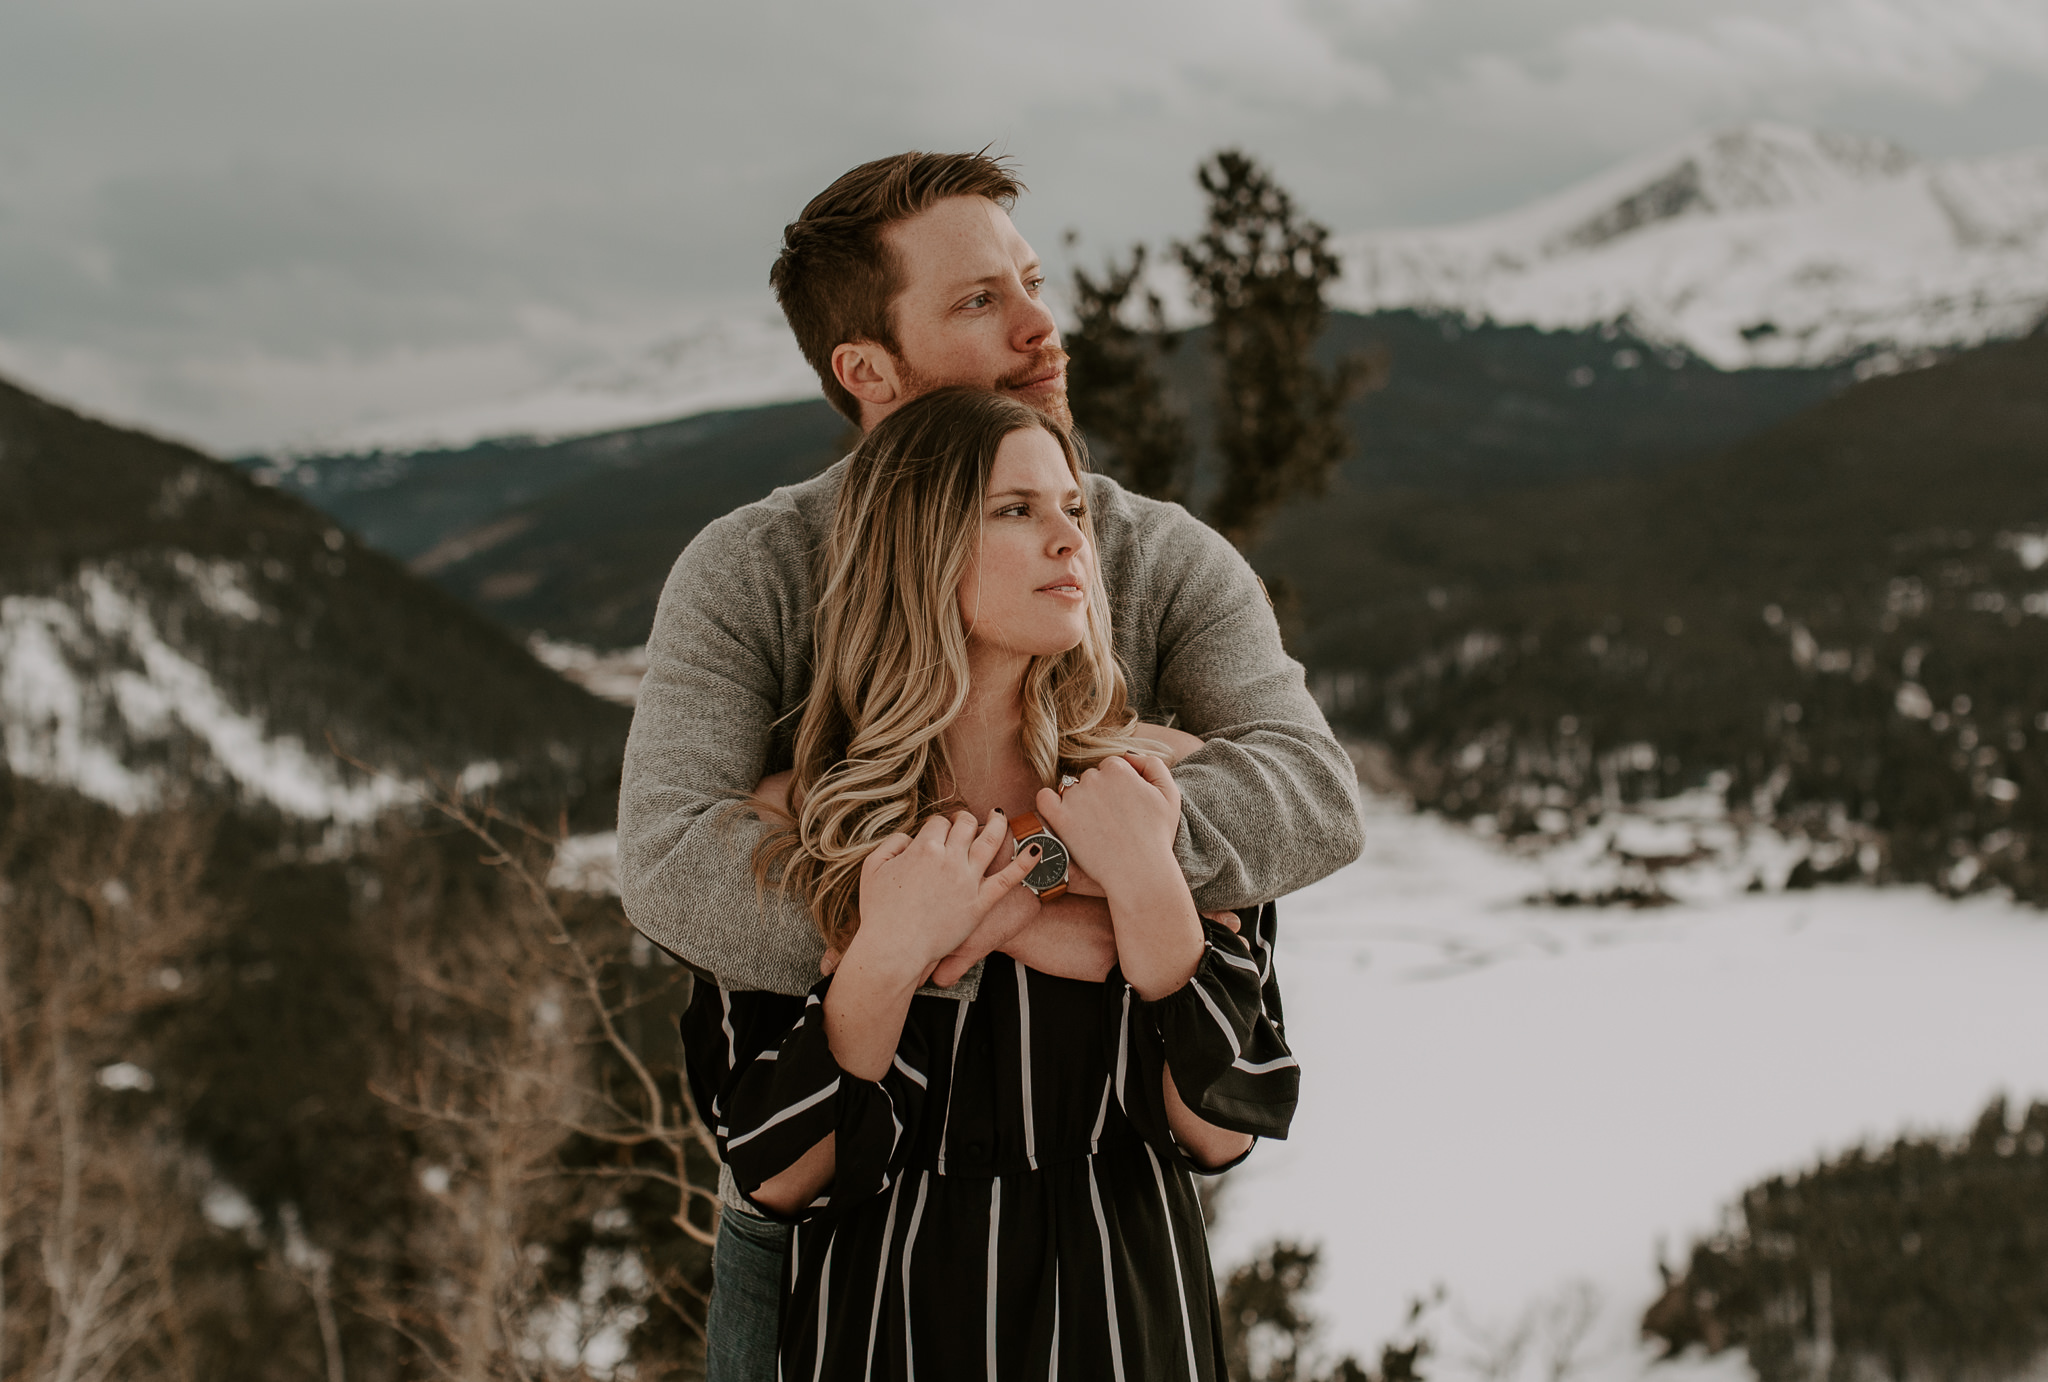 Colorado elopement and wedding photographer